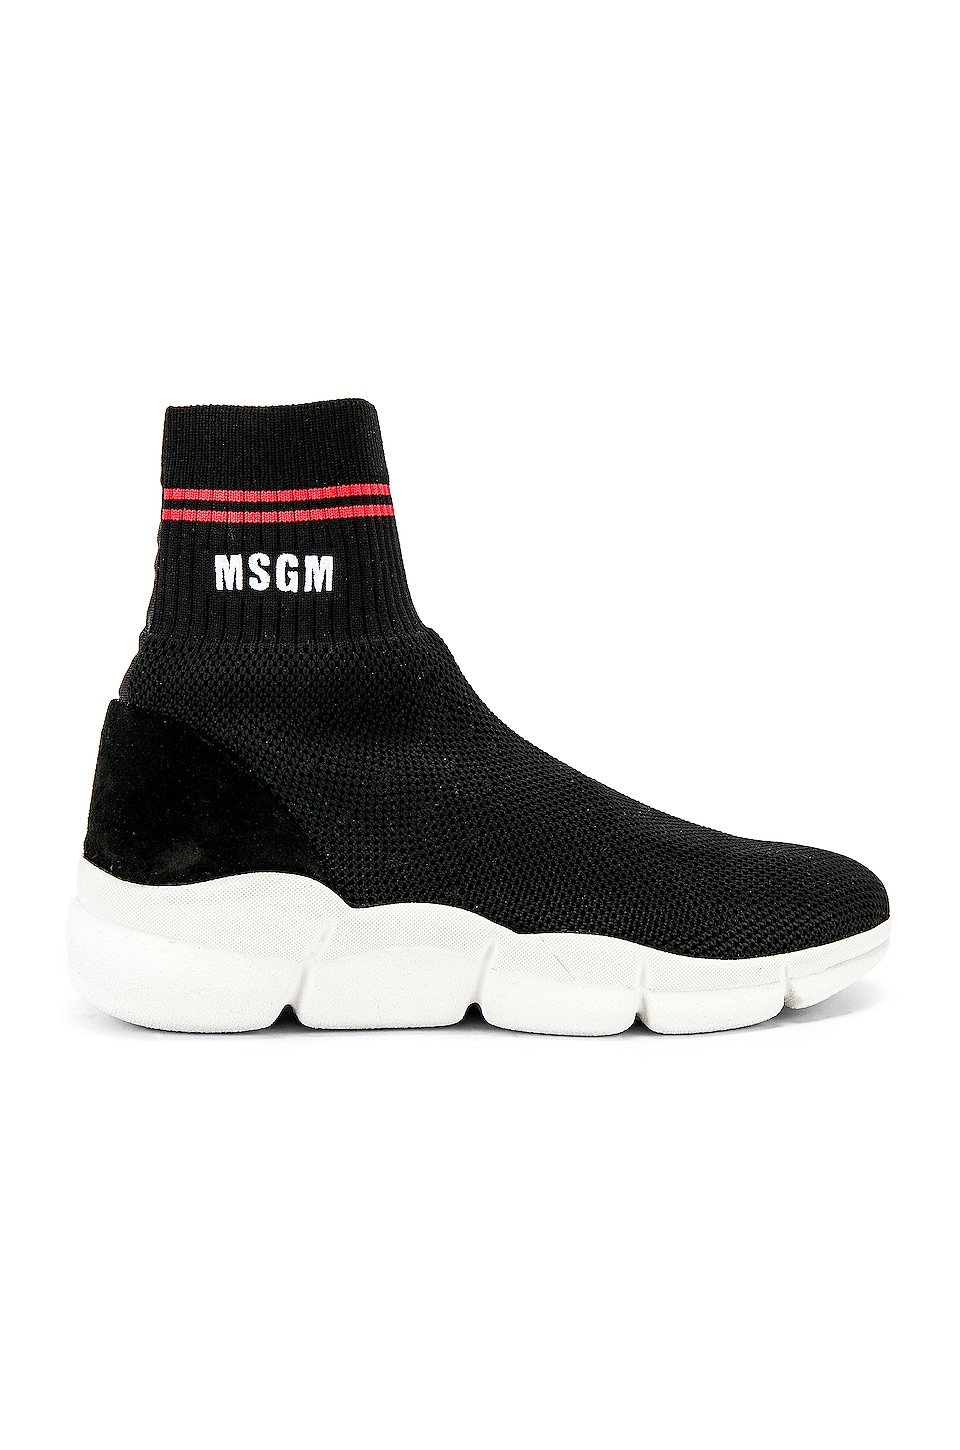 MSGM Z Waves Sneaker in Black